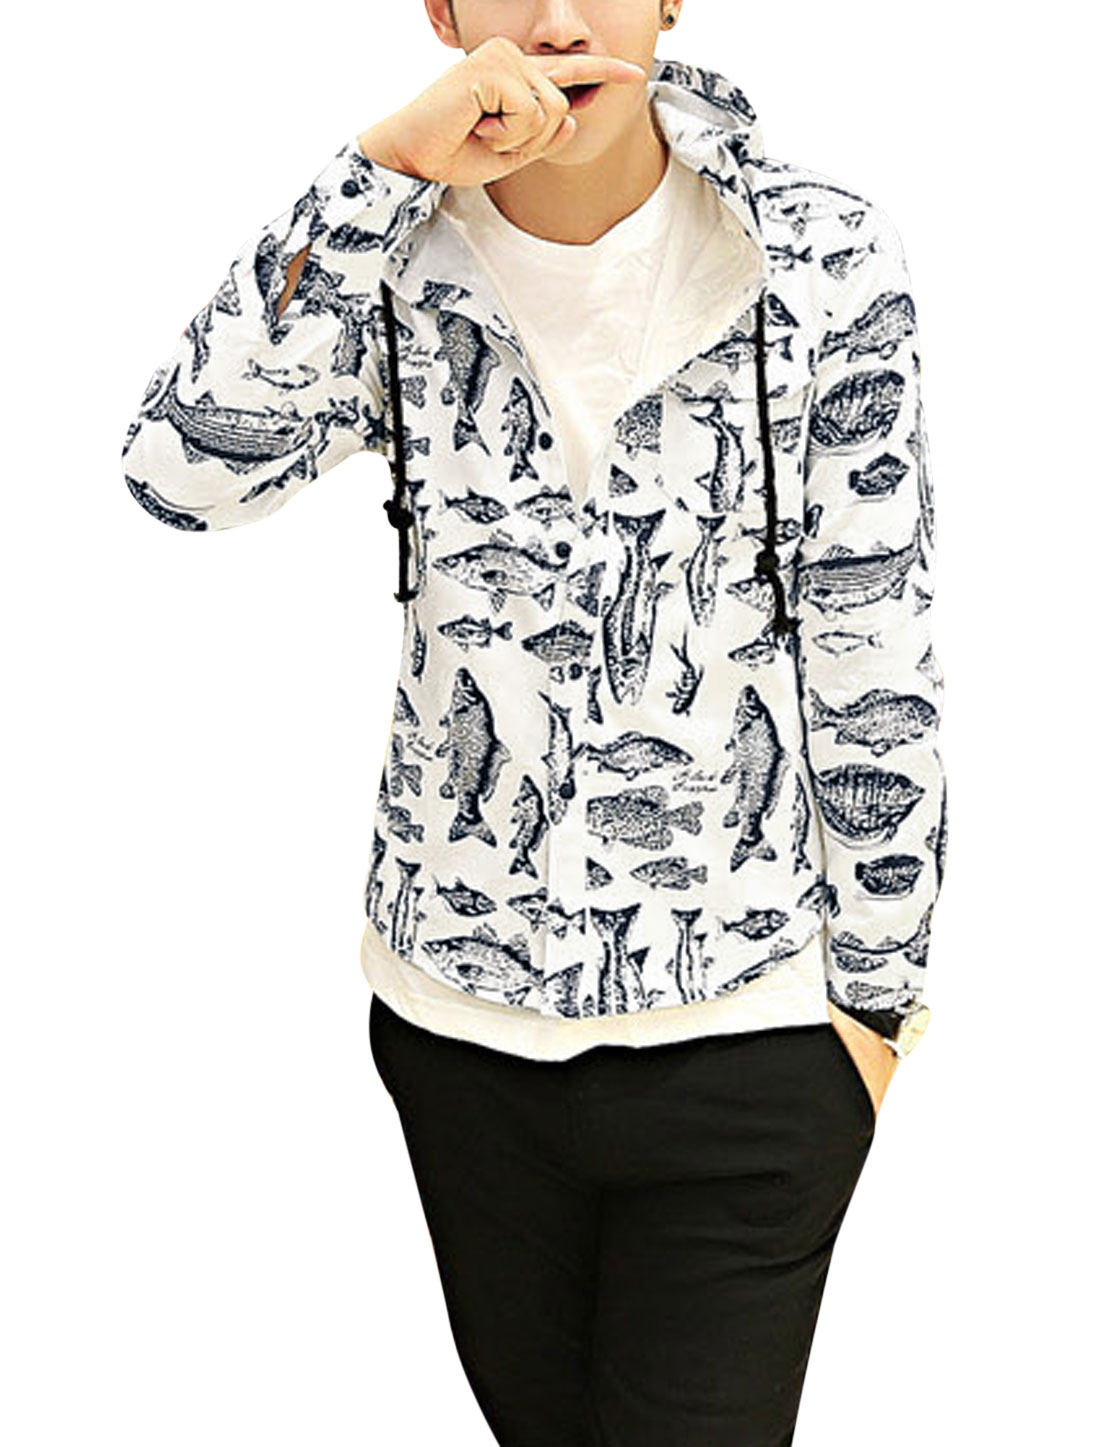 Men Fashion Buttoned Cuffs All Over Fish Pattern Drawstring Hooded Jacket White S